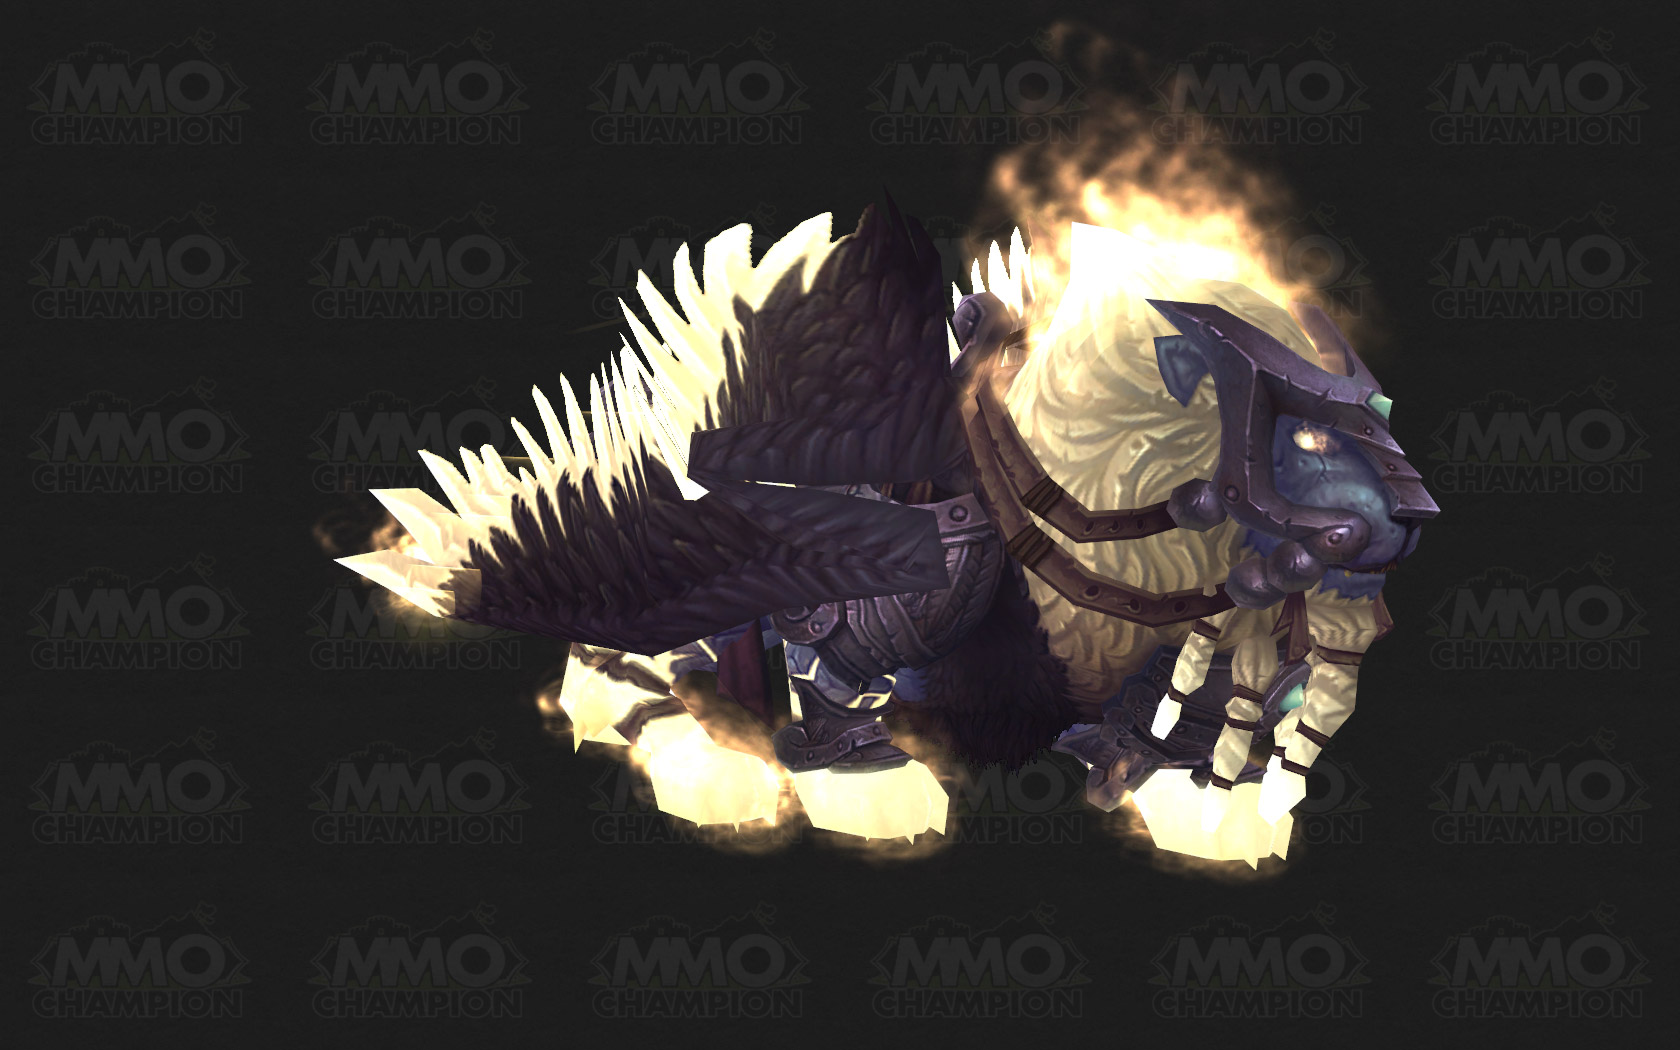 WoW Mount: WINGED GUARD (Winged Guardian) RU / EU